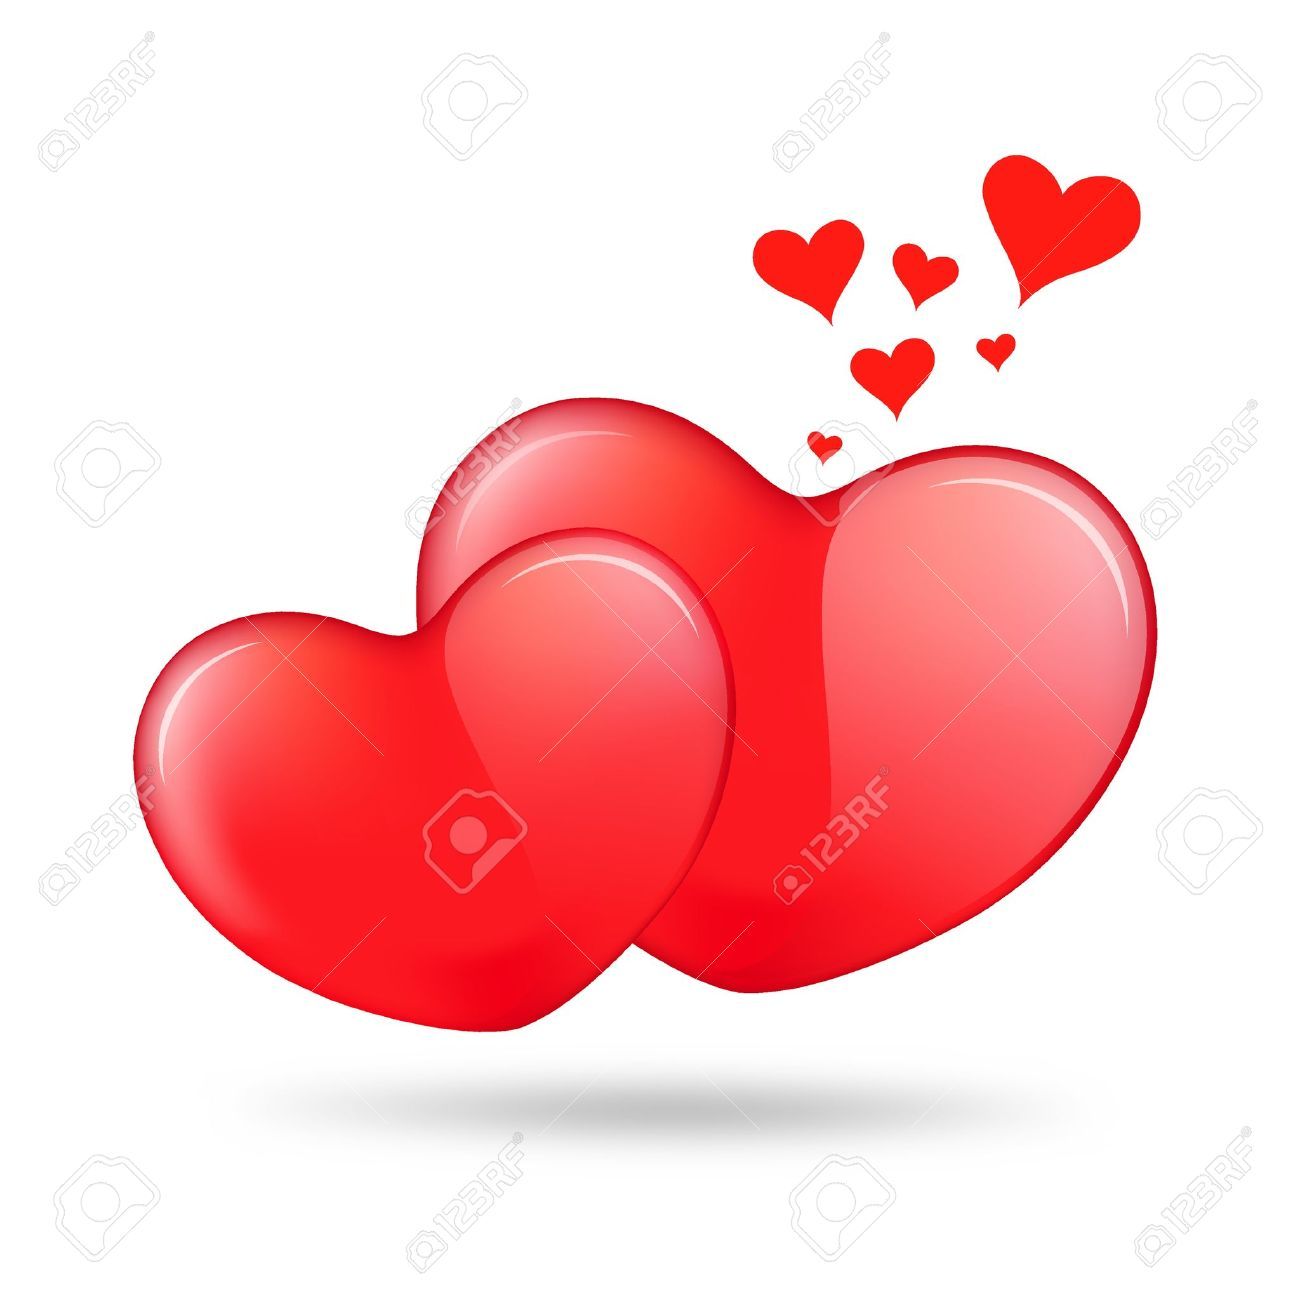 Two red heart valentine Stock Photo - 11771824